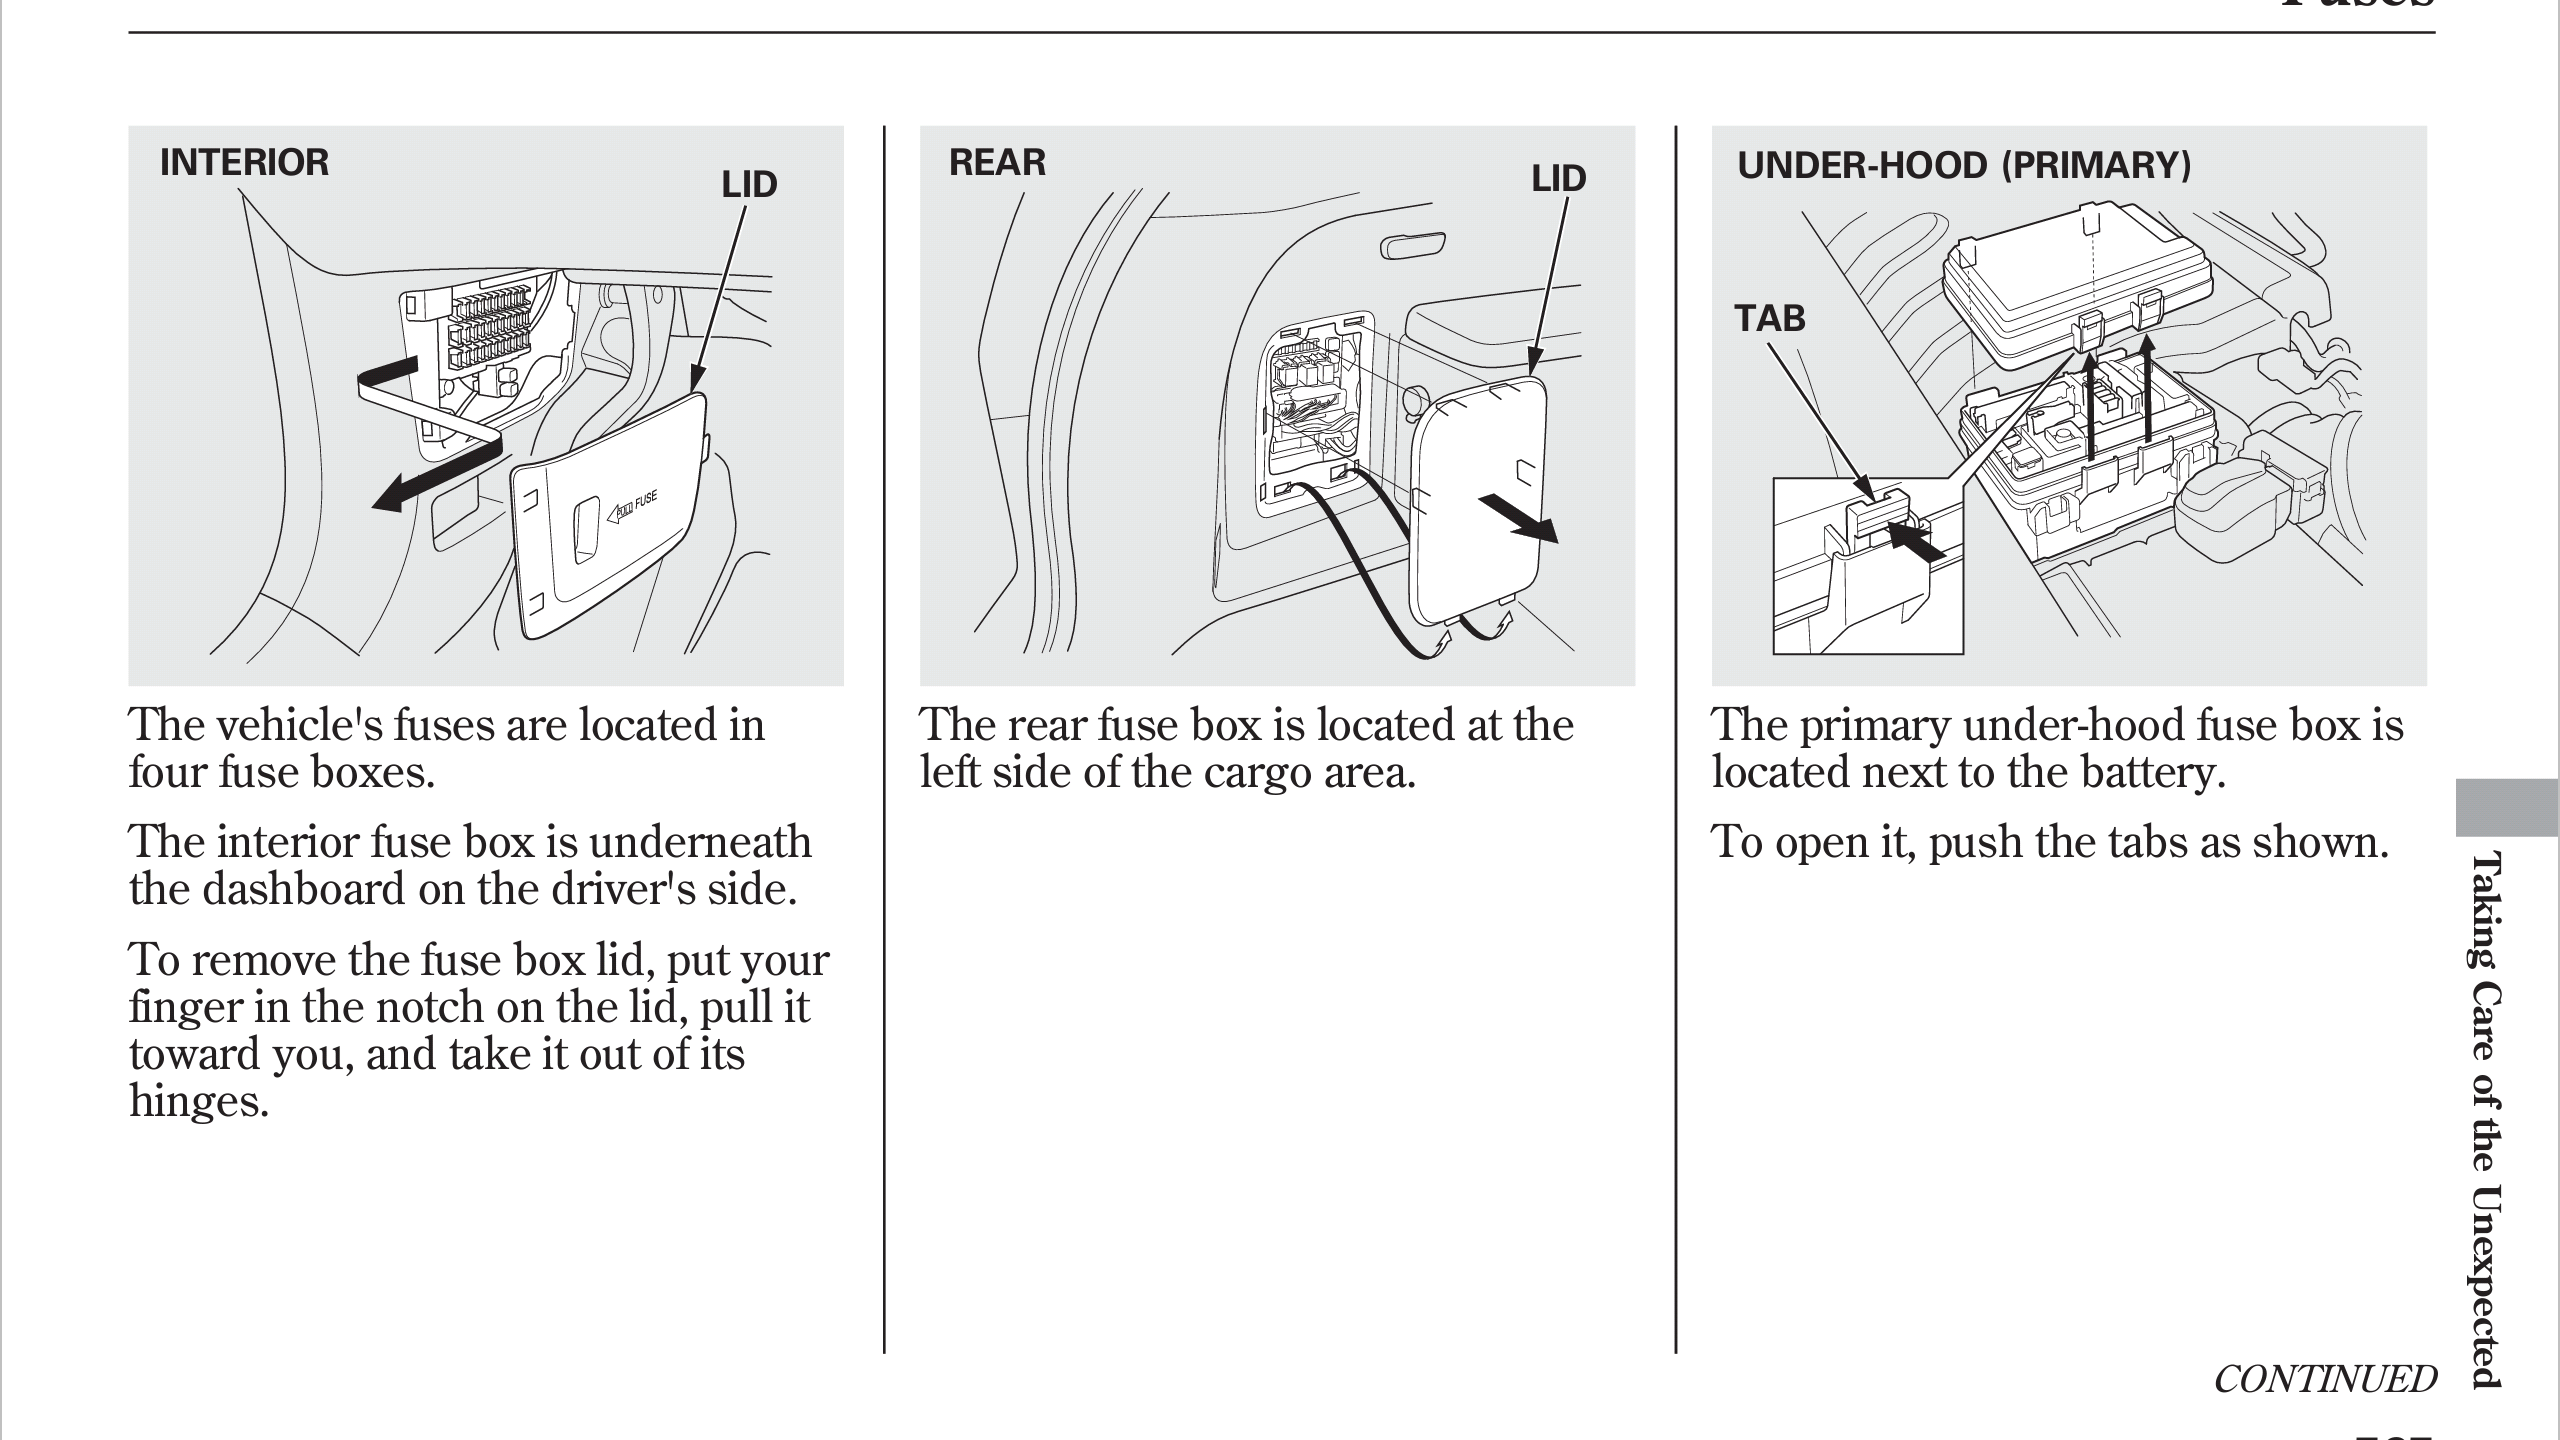 2010 Blind Spot Information wiring diagram | Acura MDX SUV Forums on